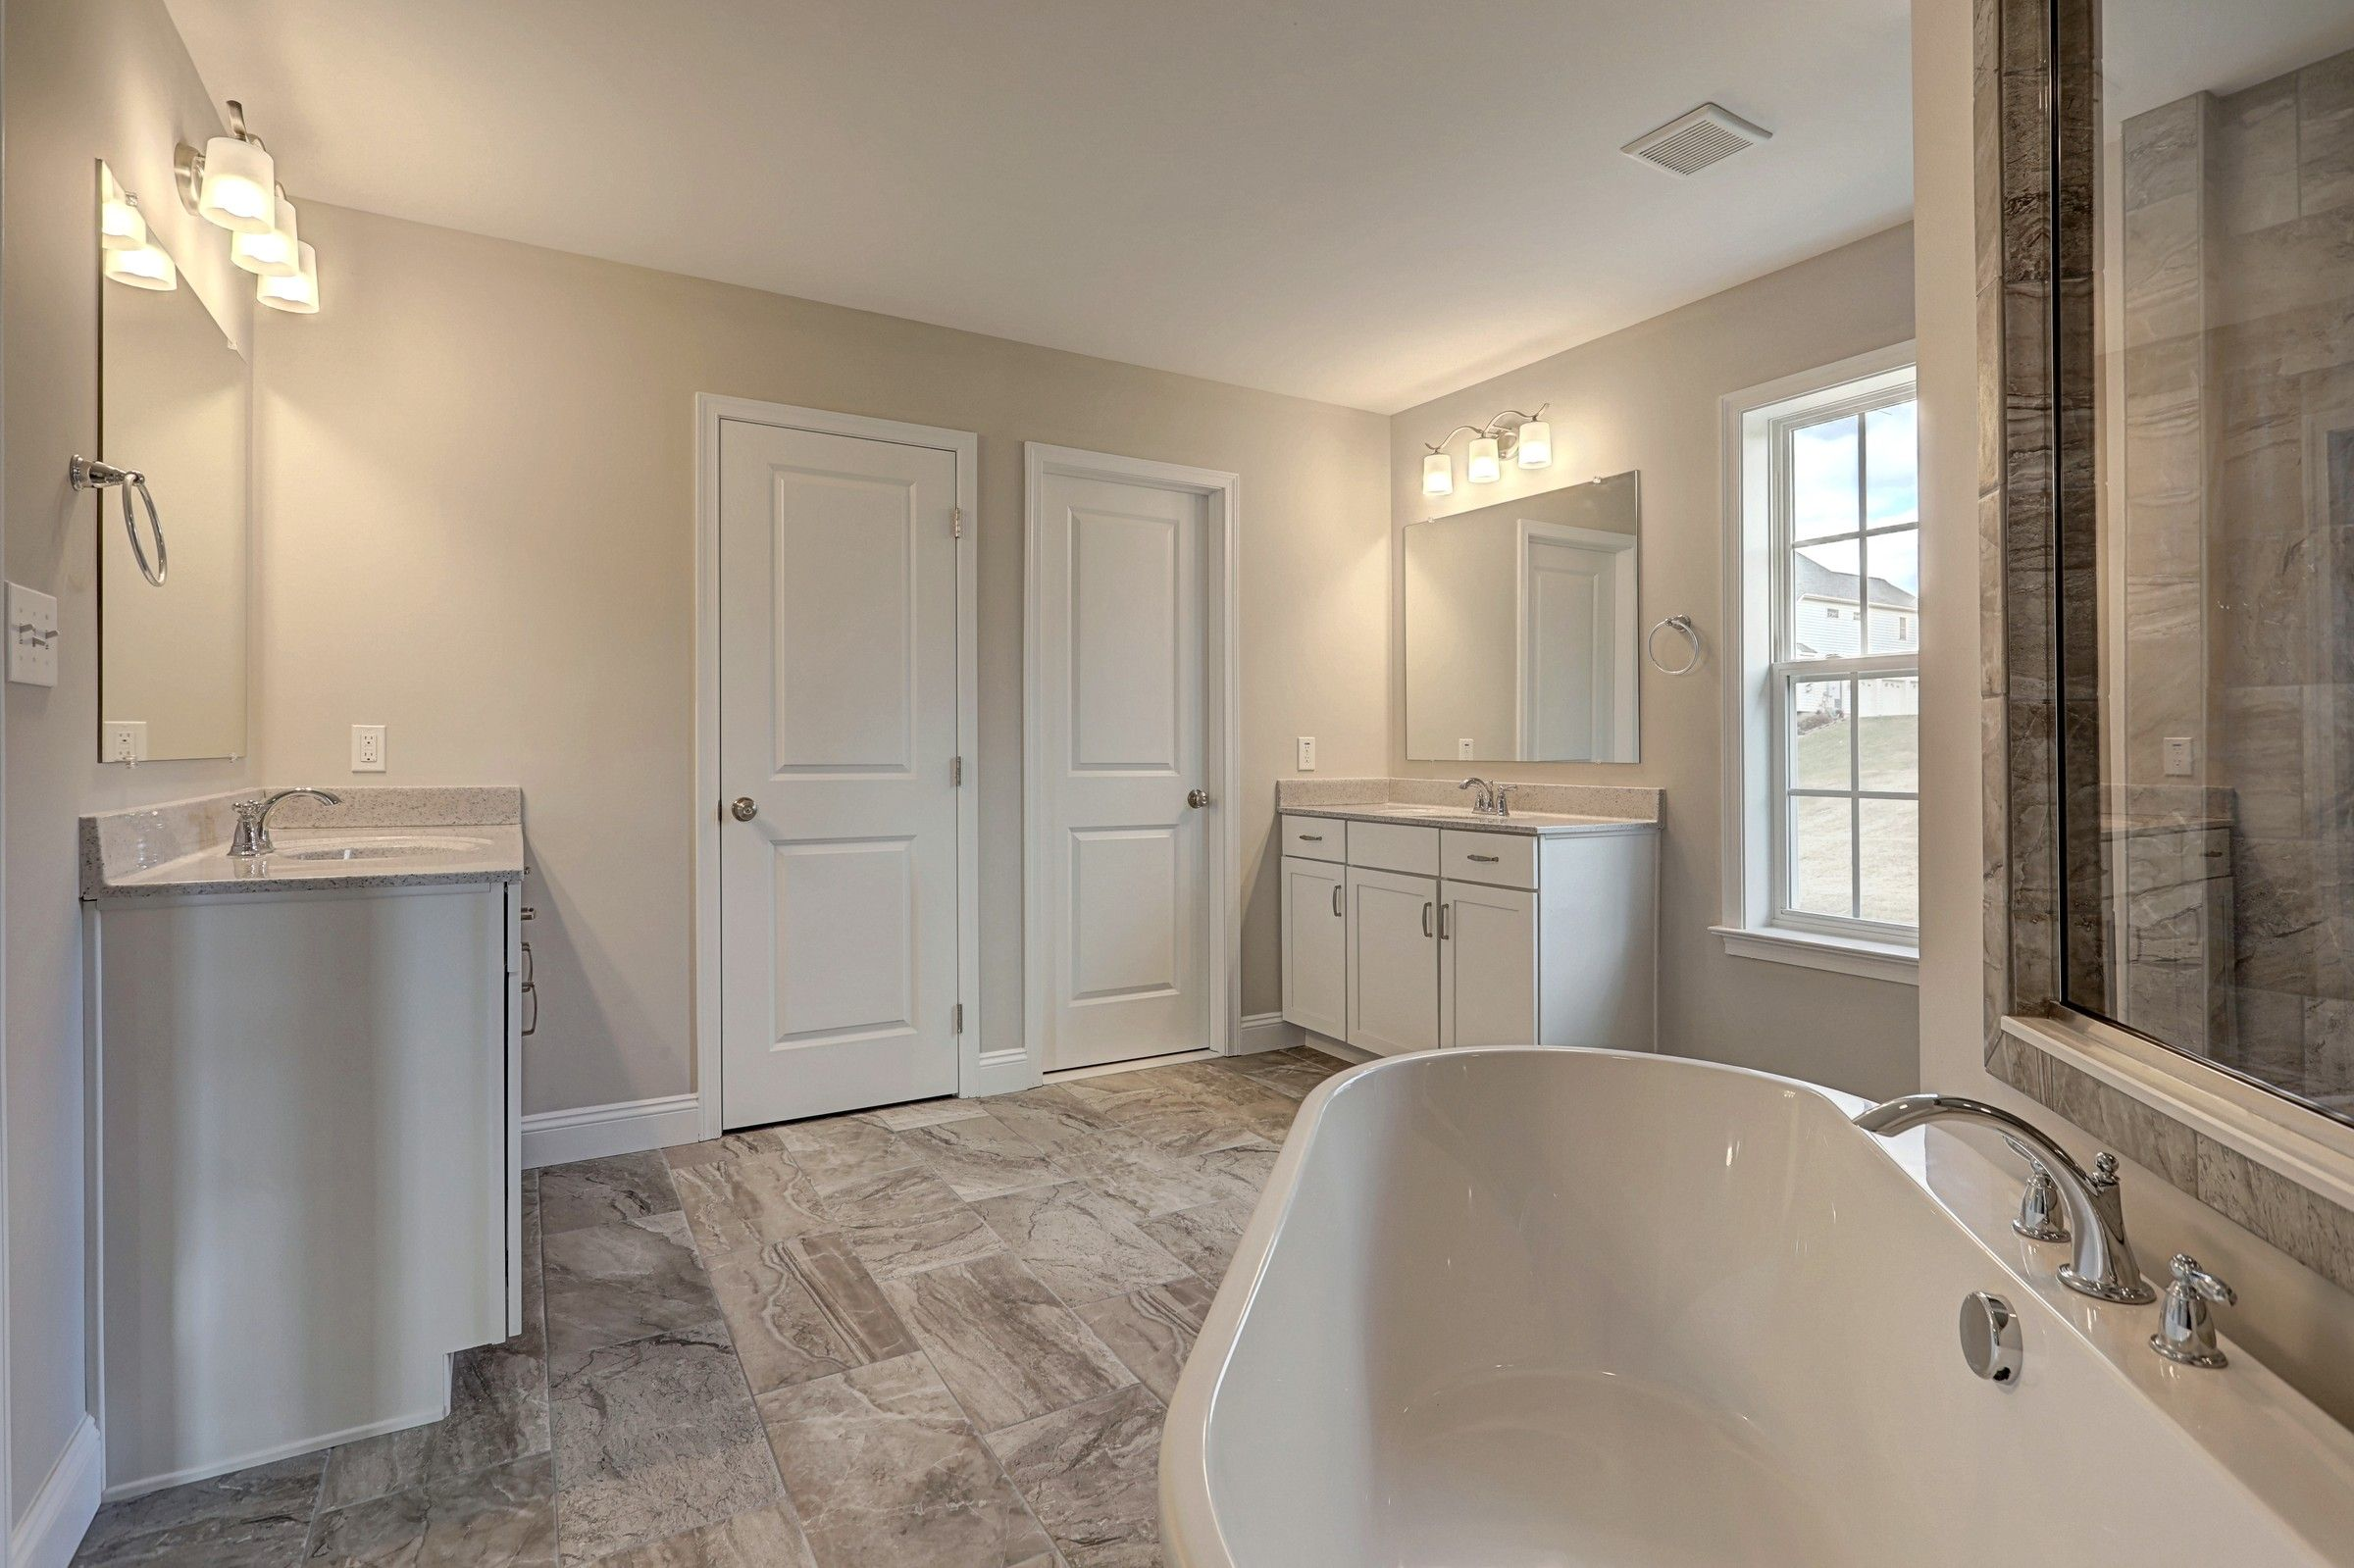 Bathroom featured in the Parker Farmhouse By Keystone Custom Homes in York, PA